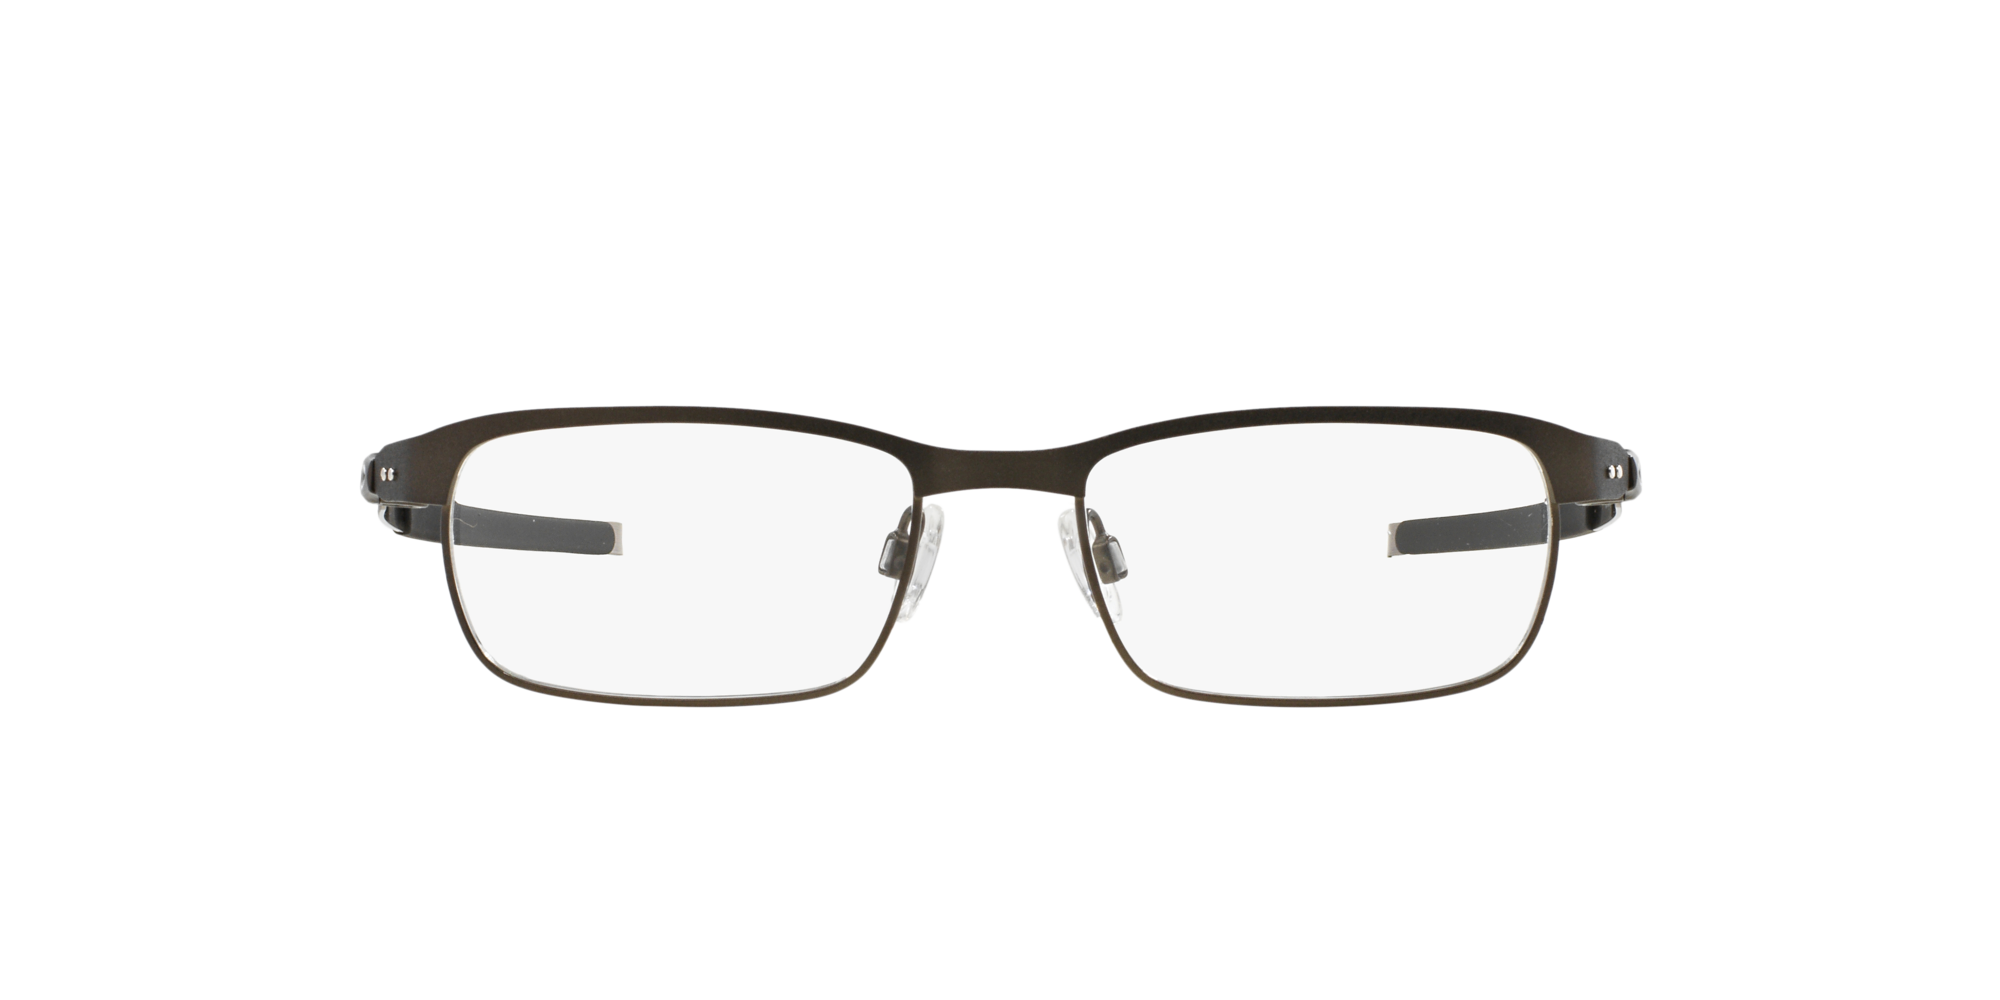 Image for OX3184 TINCUP from LensCrafters | Glasses, Prescription Glasses Online, Eyewear